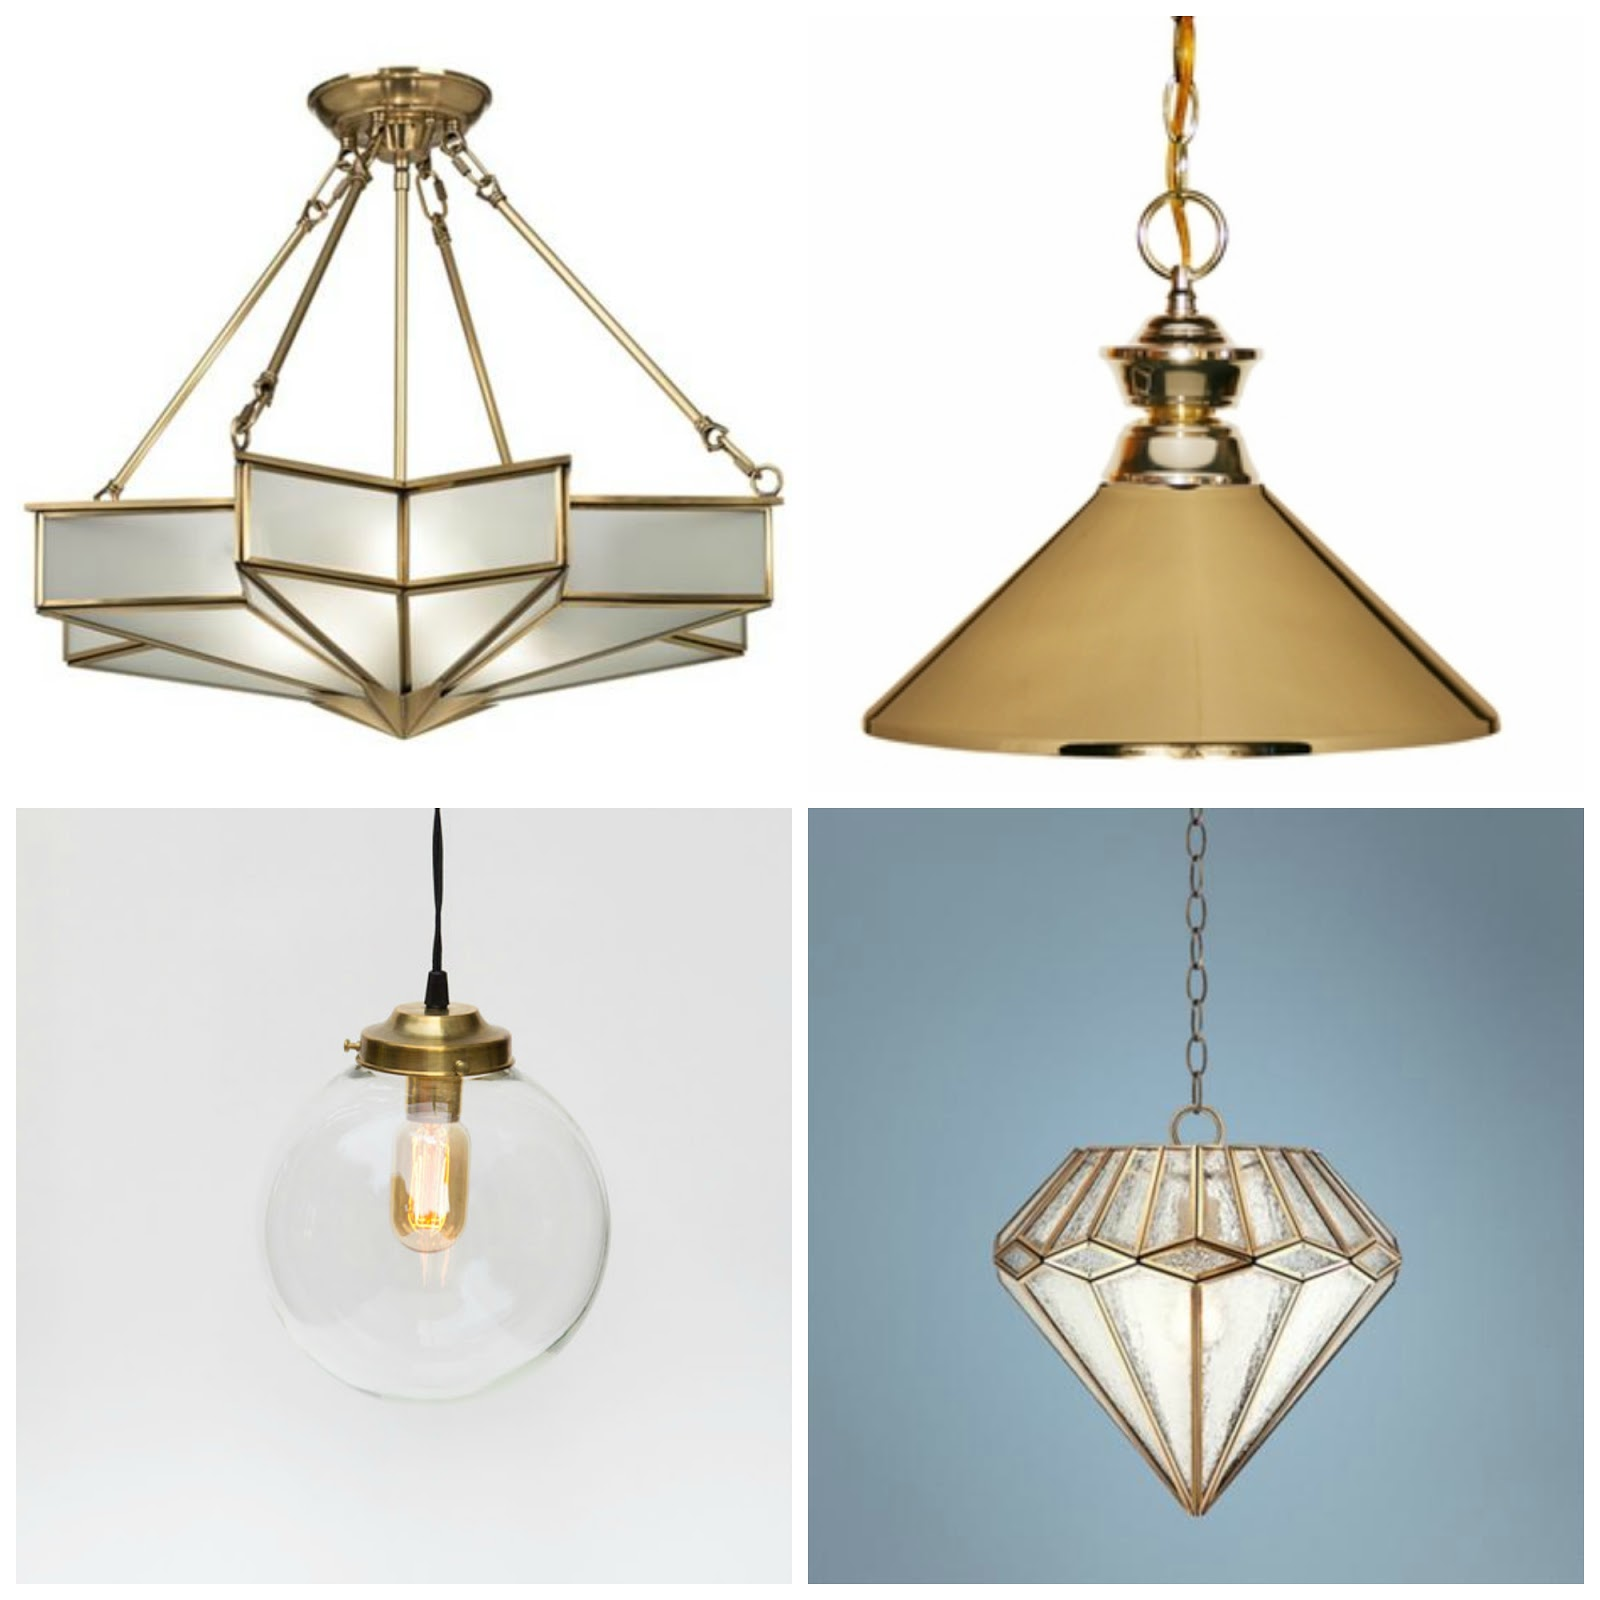 Brass Chandelier Ceiling Lights : Rosa beltran design brass pendant ceiling light round up